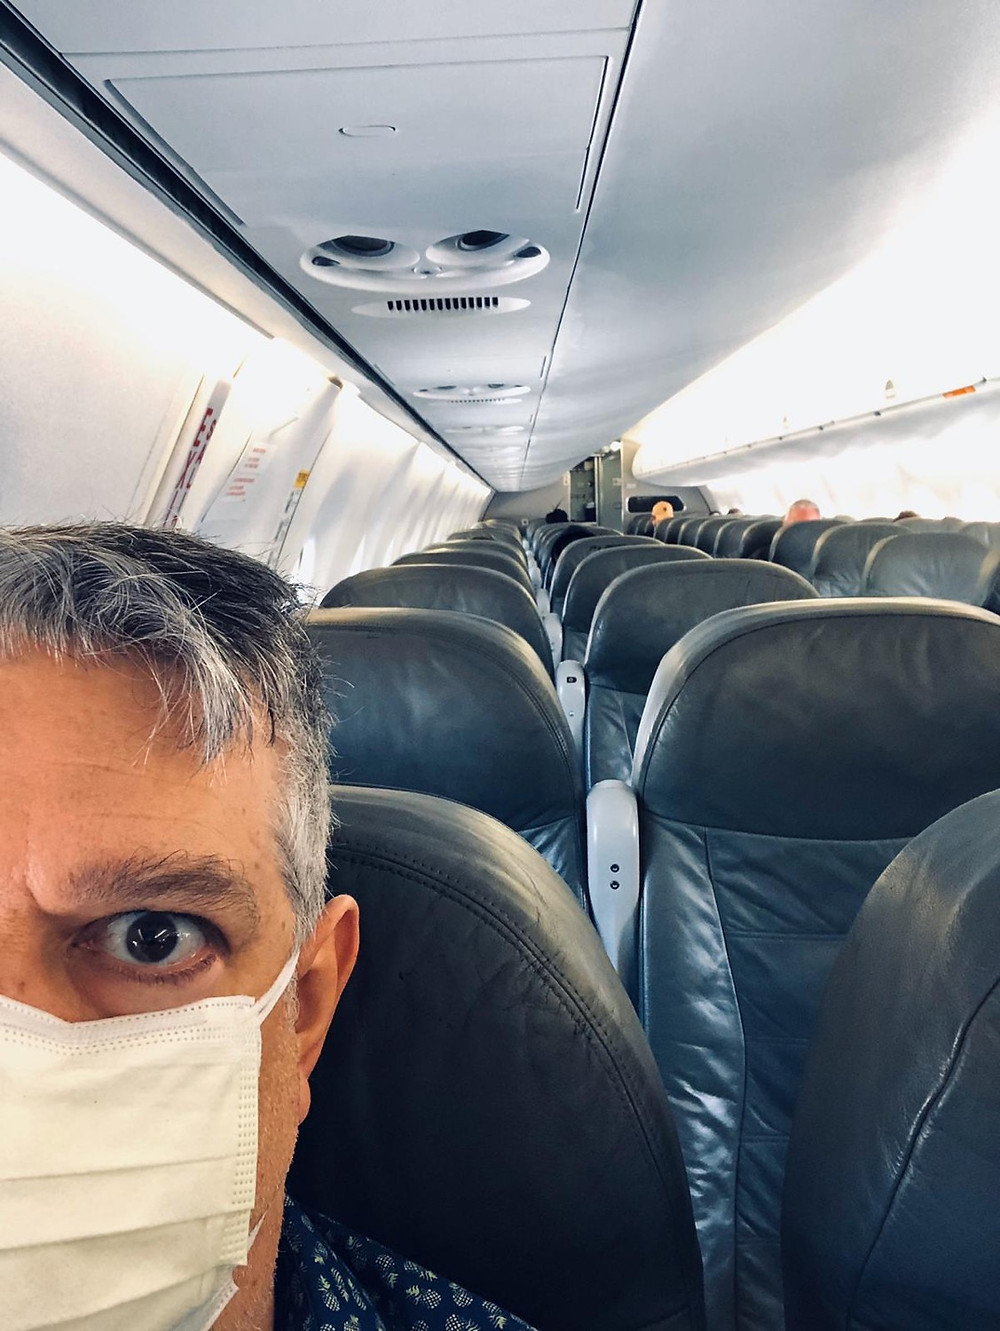 Grant on the plane from Florida to New York - no one on it but 10 people